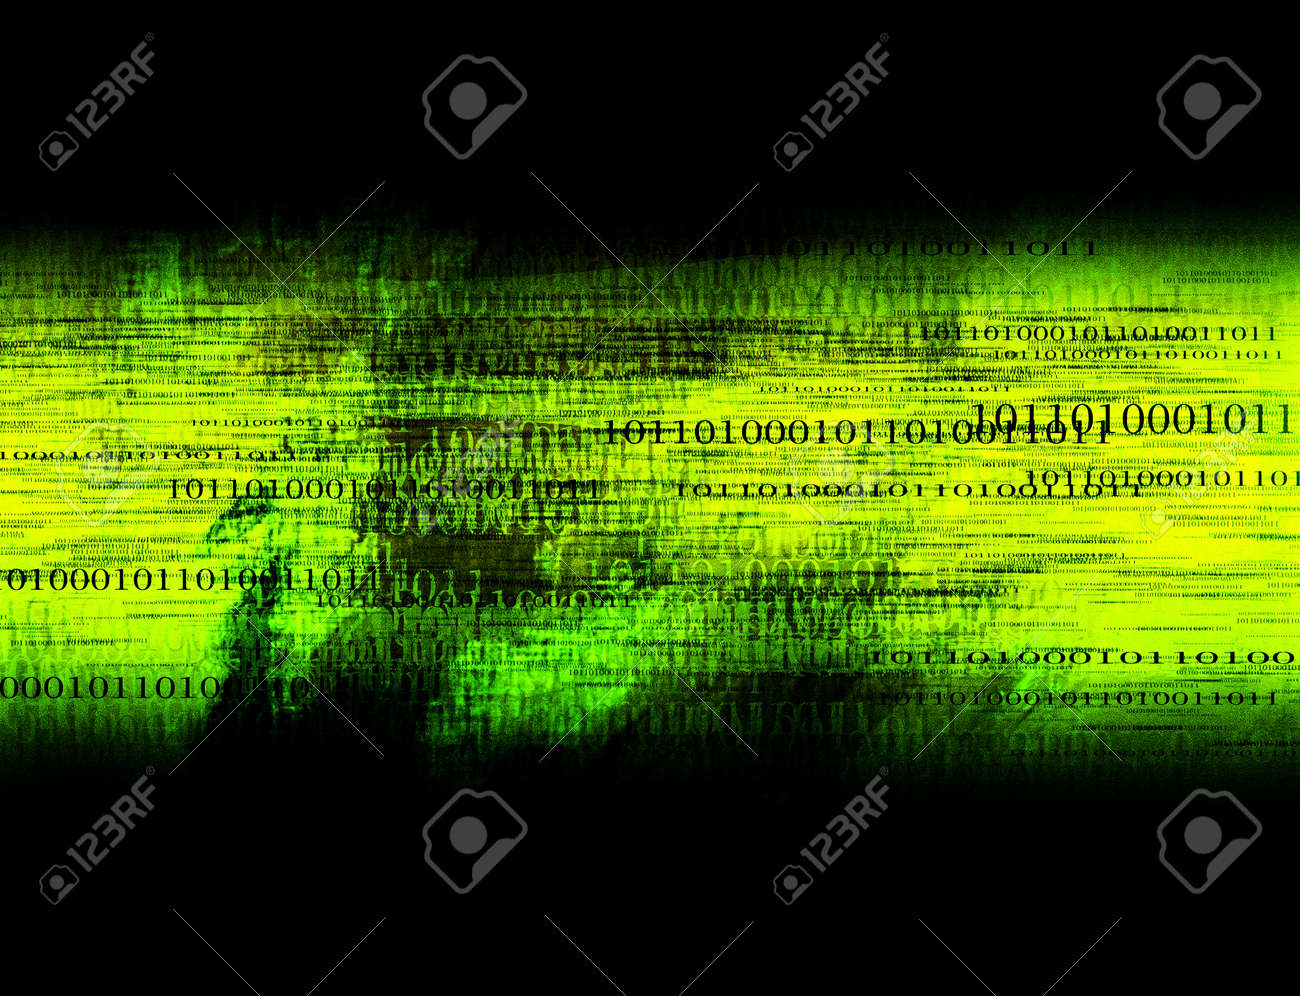 Computer designed highly detailed grunge abstract textured business collage. Nice background for your projects. Stock Photo - 11120415